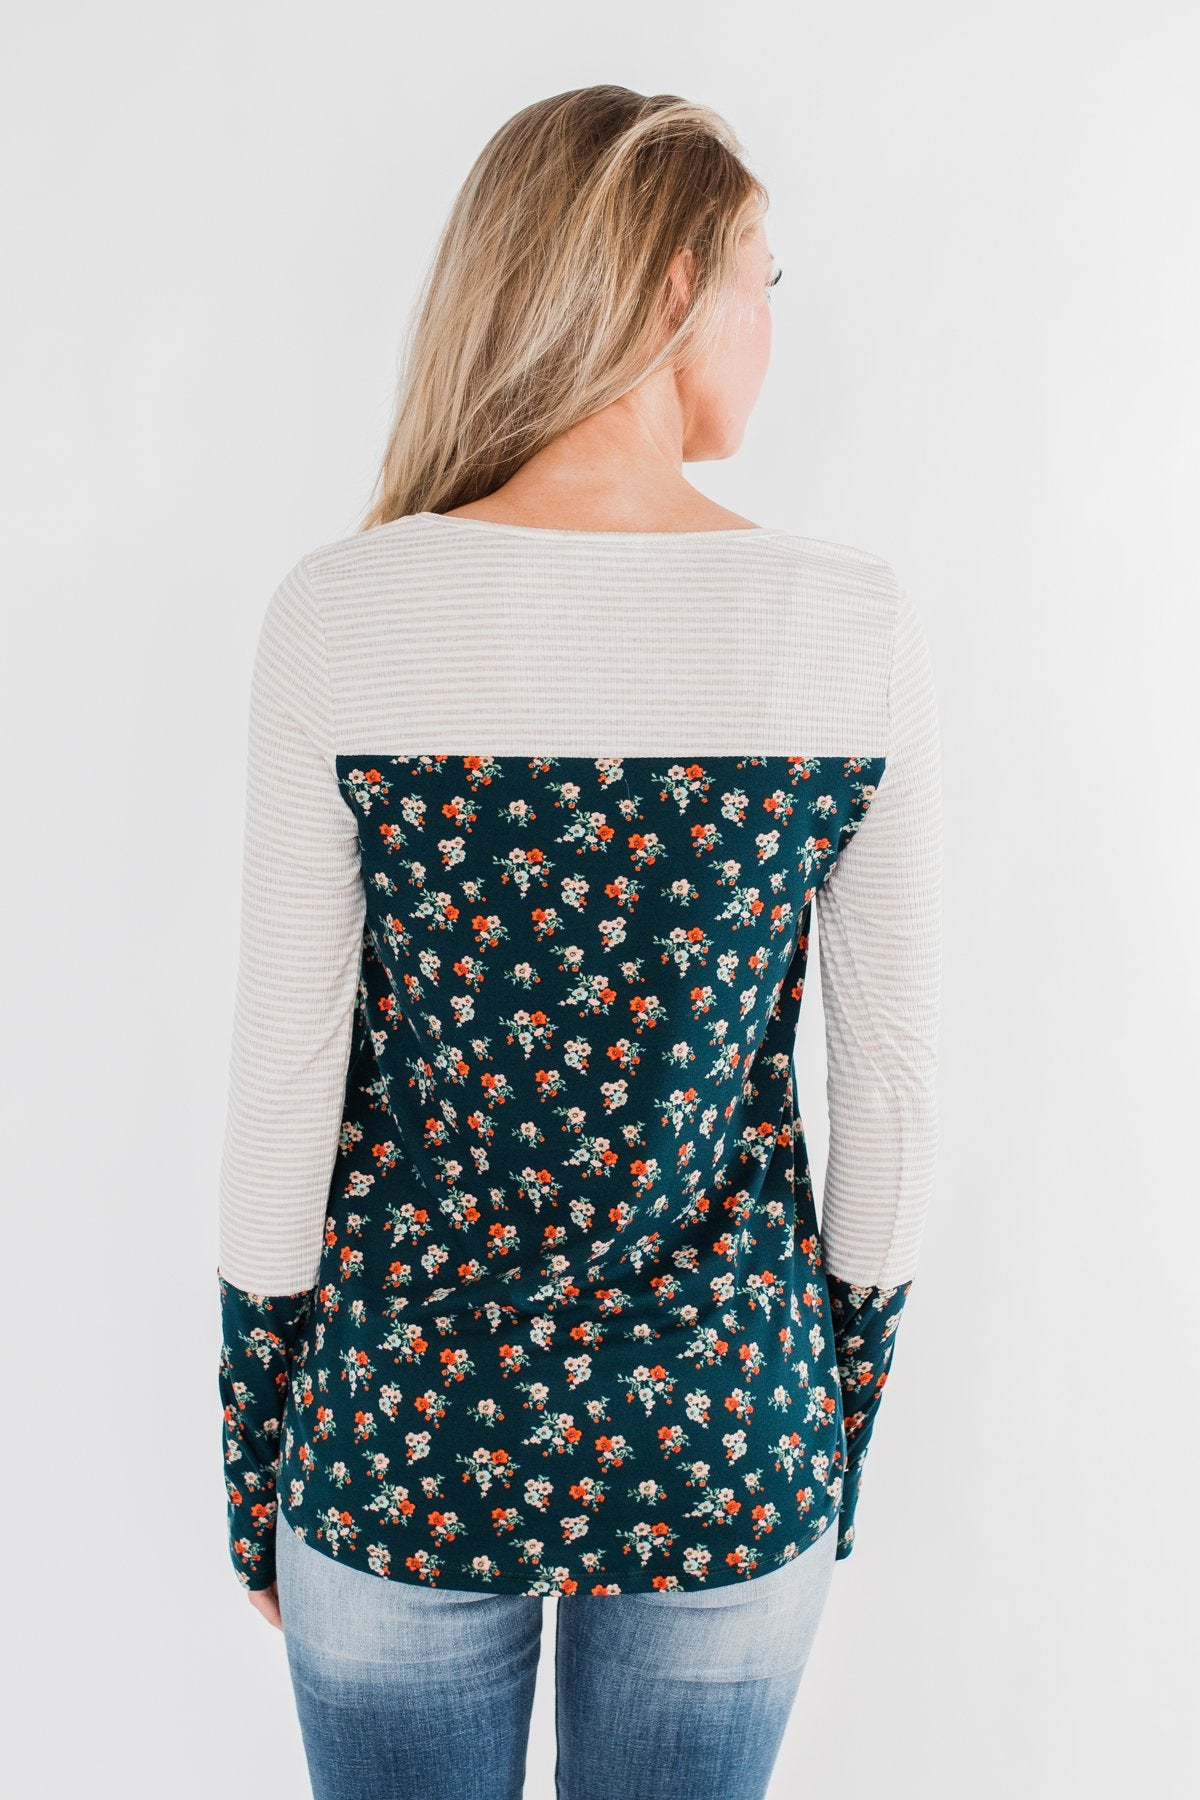 Time Of Your Life Floral & Striped Top- Dark Teal & Oatmeal